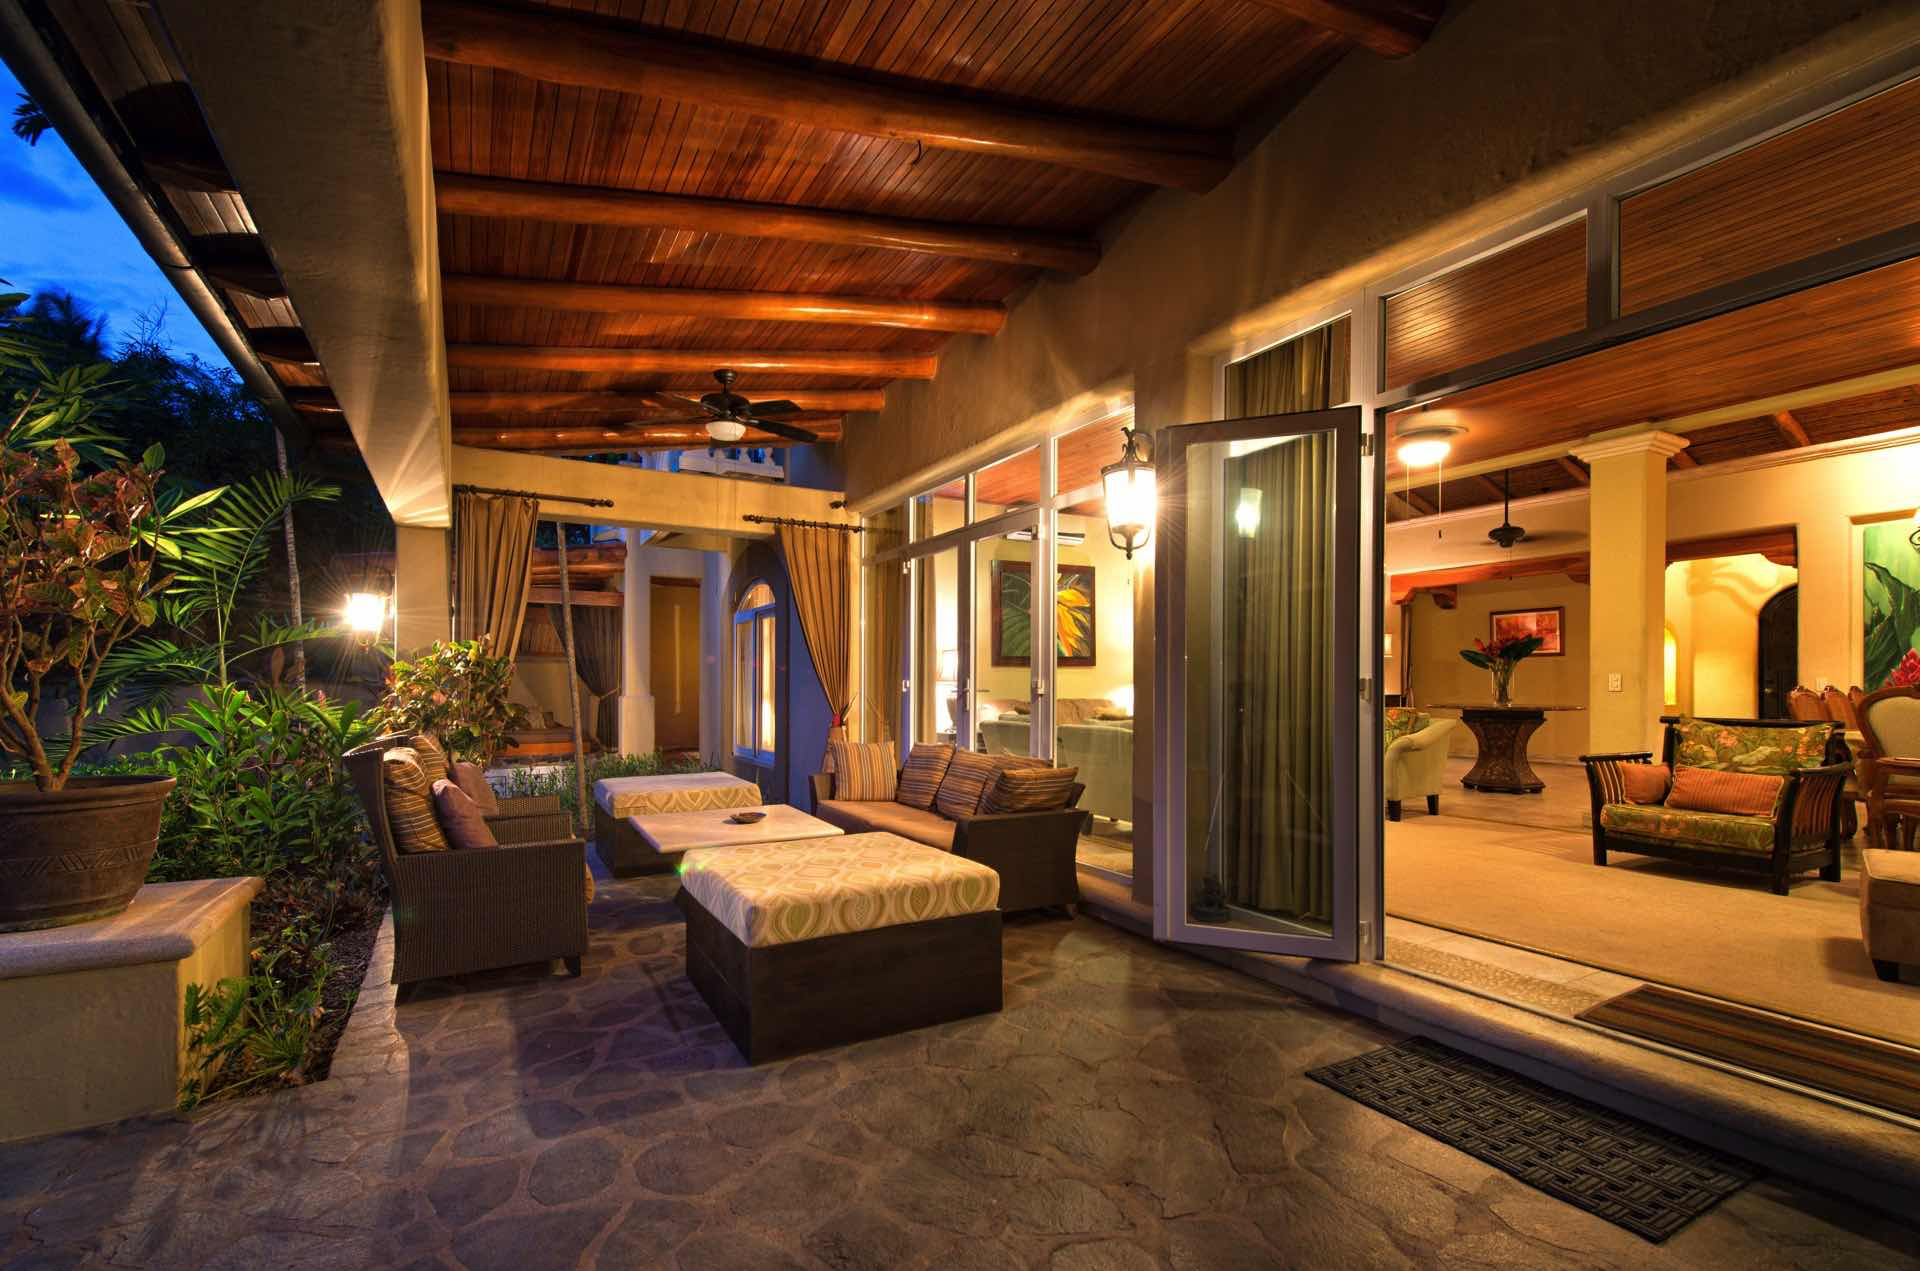 Spend peaceful evenings relaxing on the patio in paradise